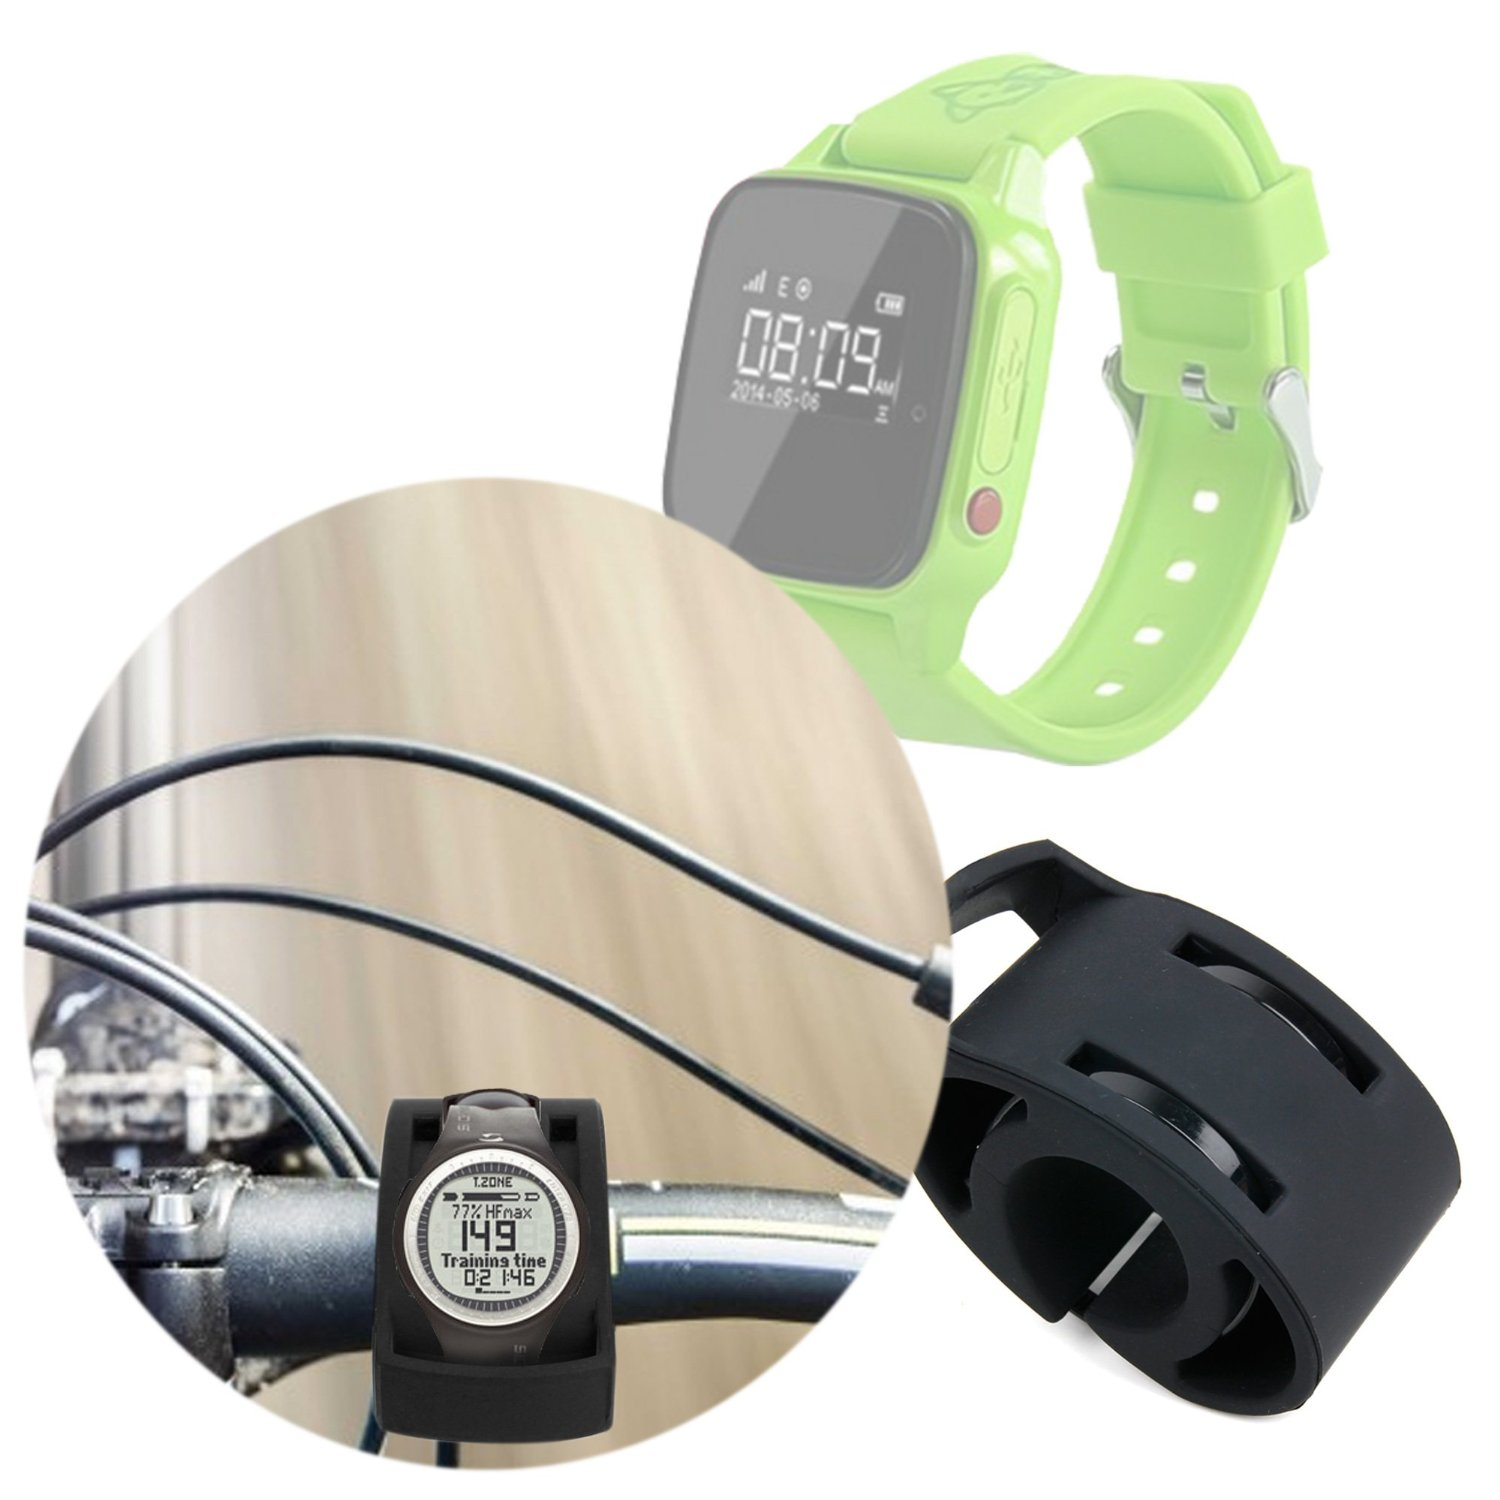 DURAGADGET Black Bicycle Handlebar Mount Kit for NEW Haier SOS Connected Smartwatch - Secured with Strong Cable Ties